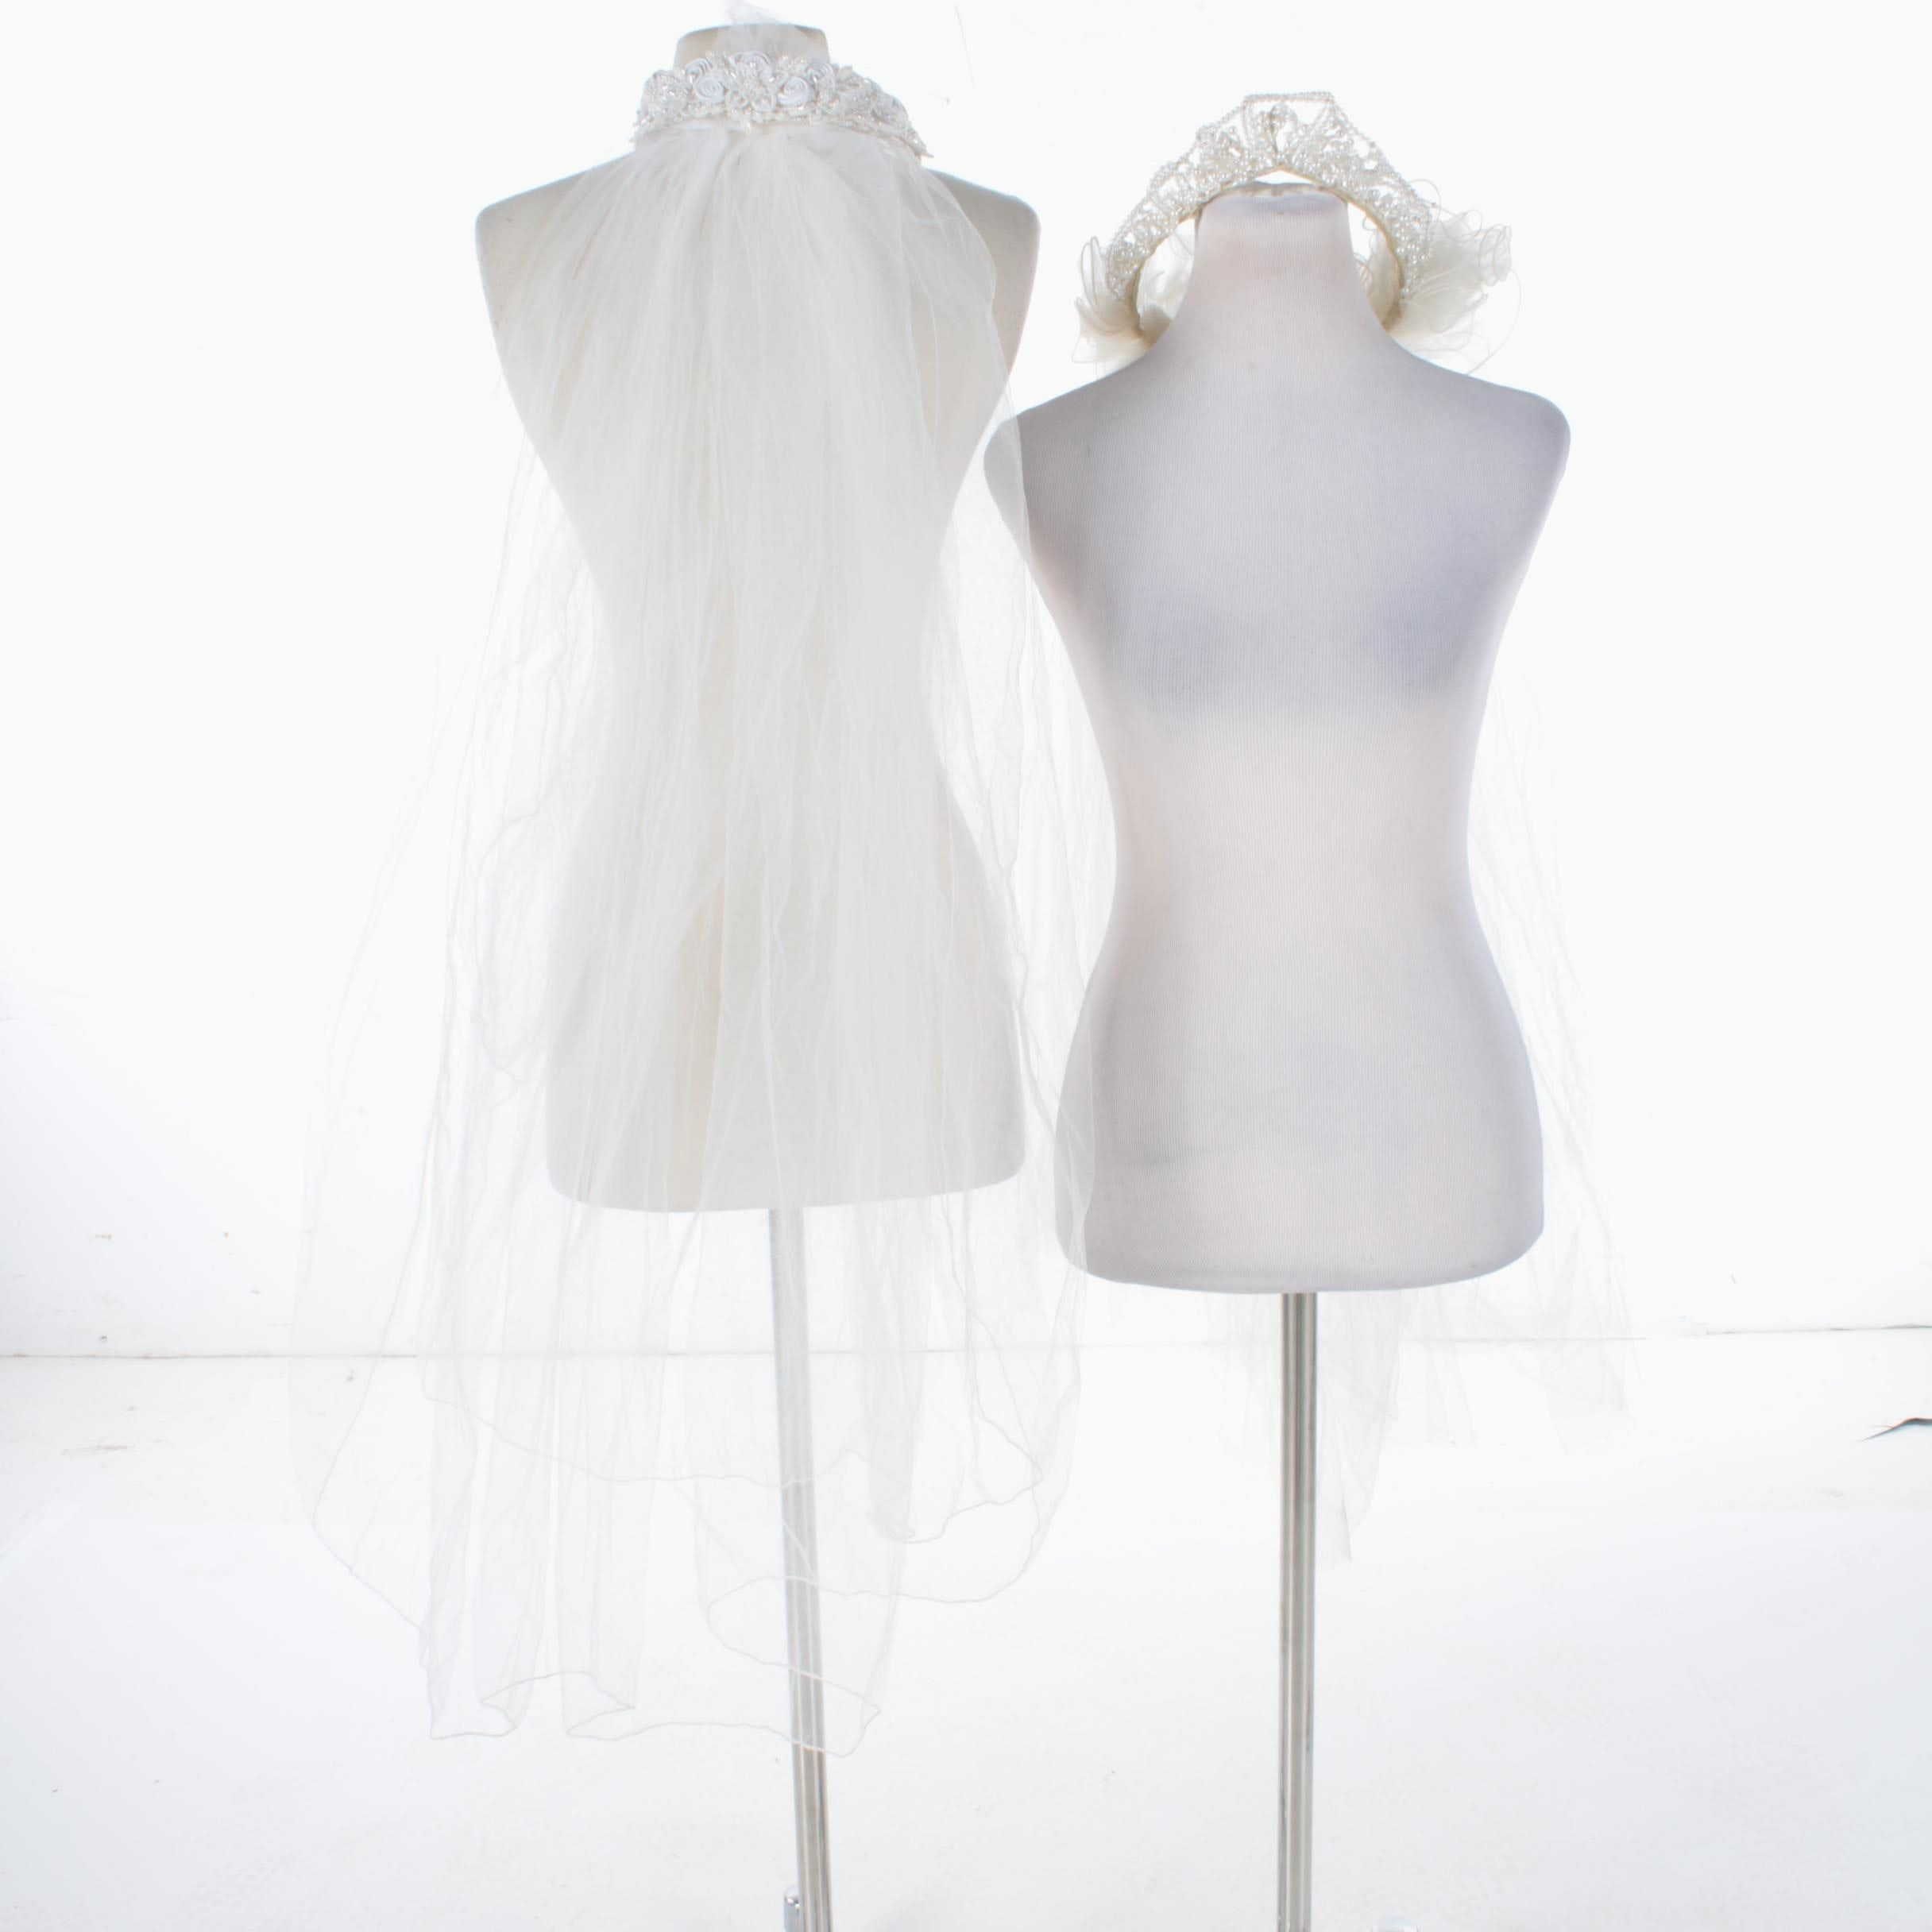 Pair of Bridal Veils with Headpieces